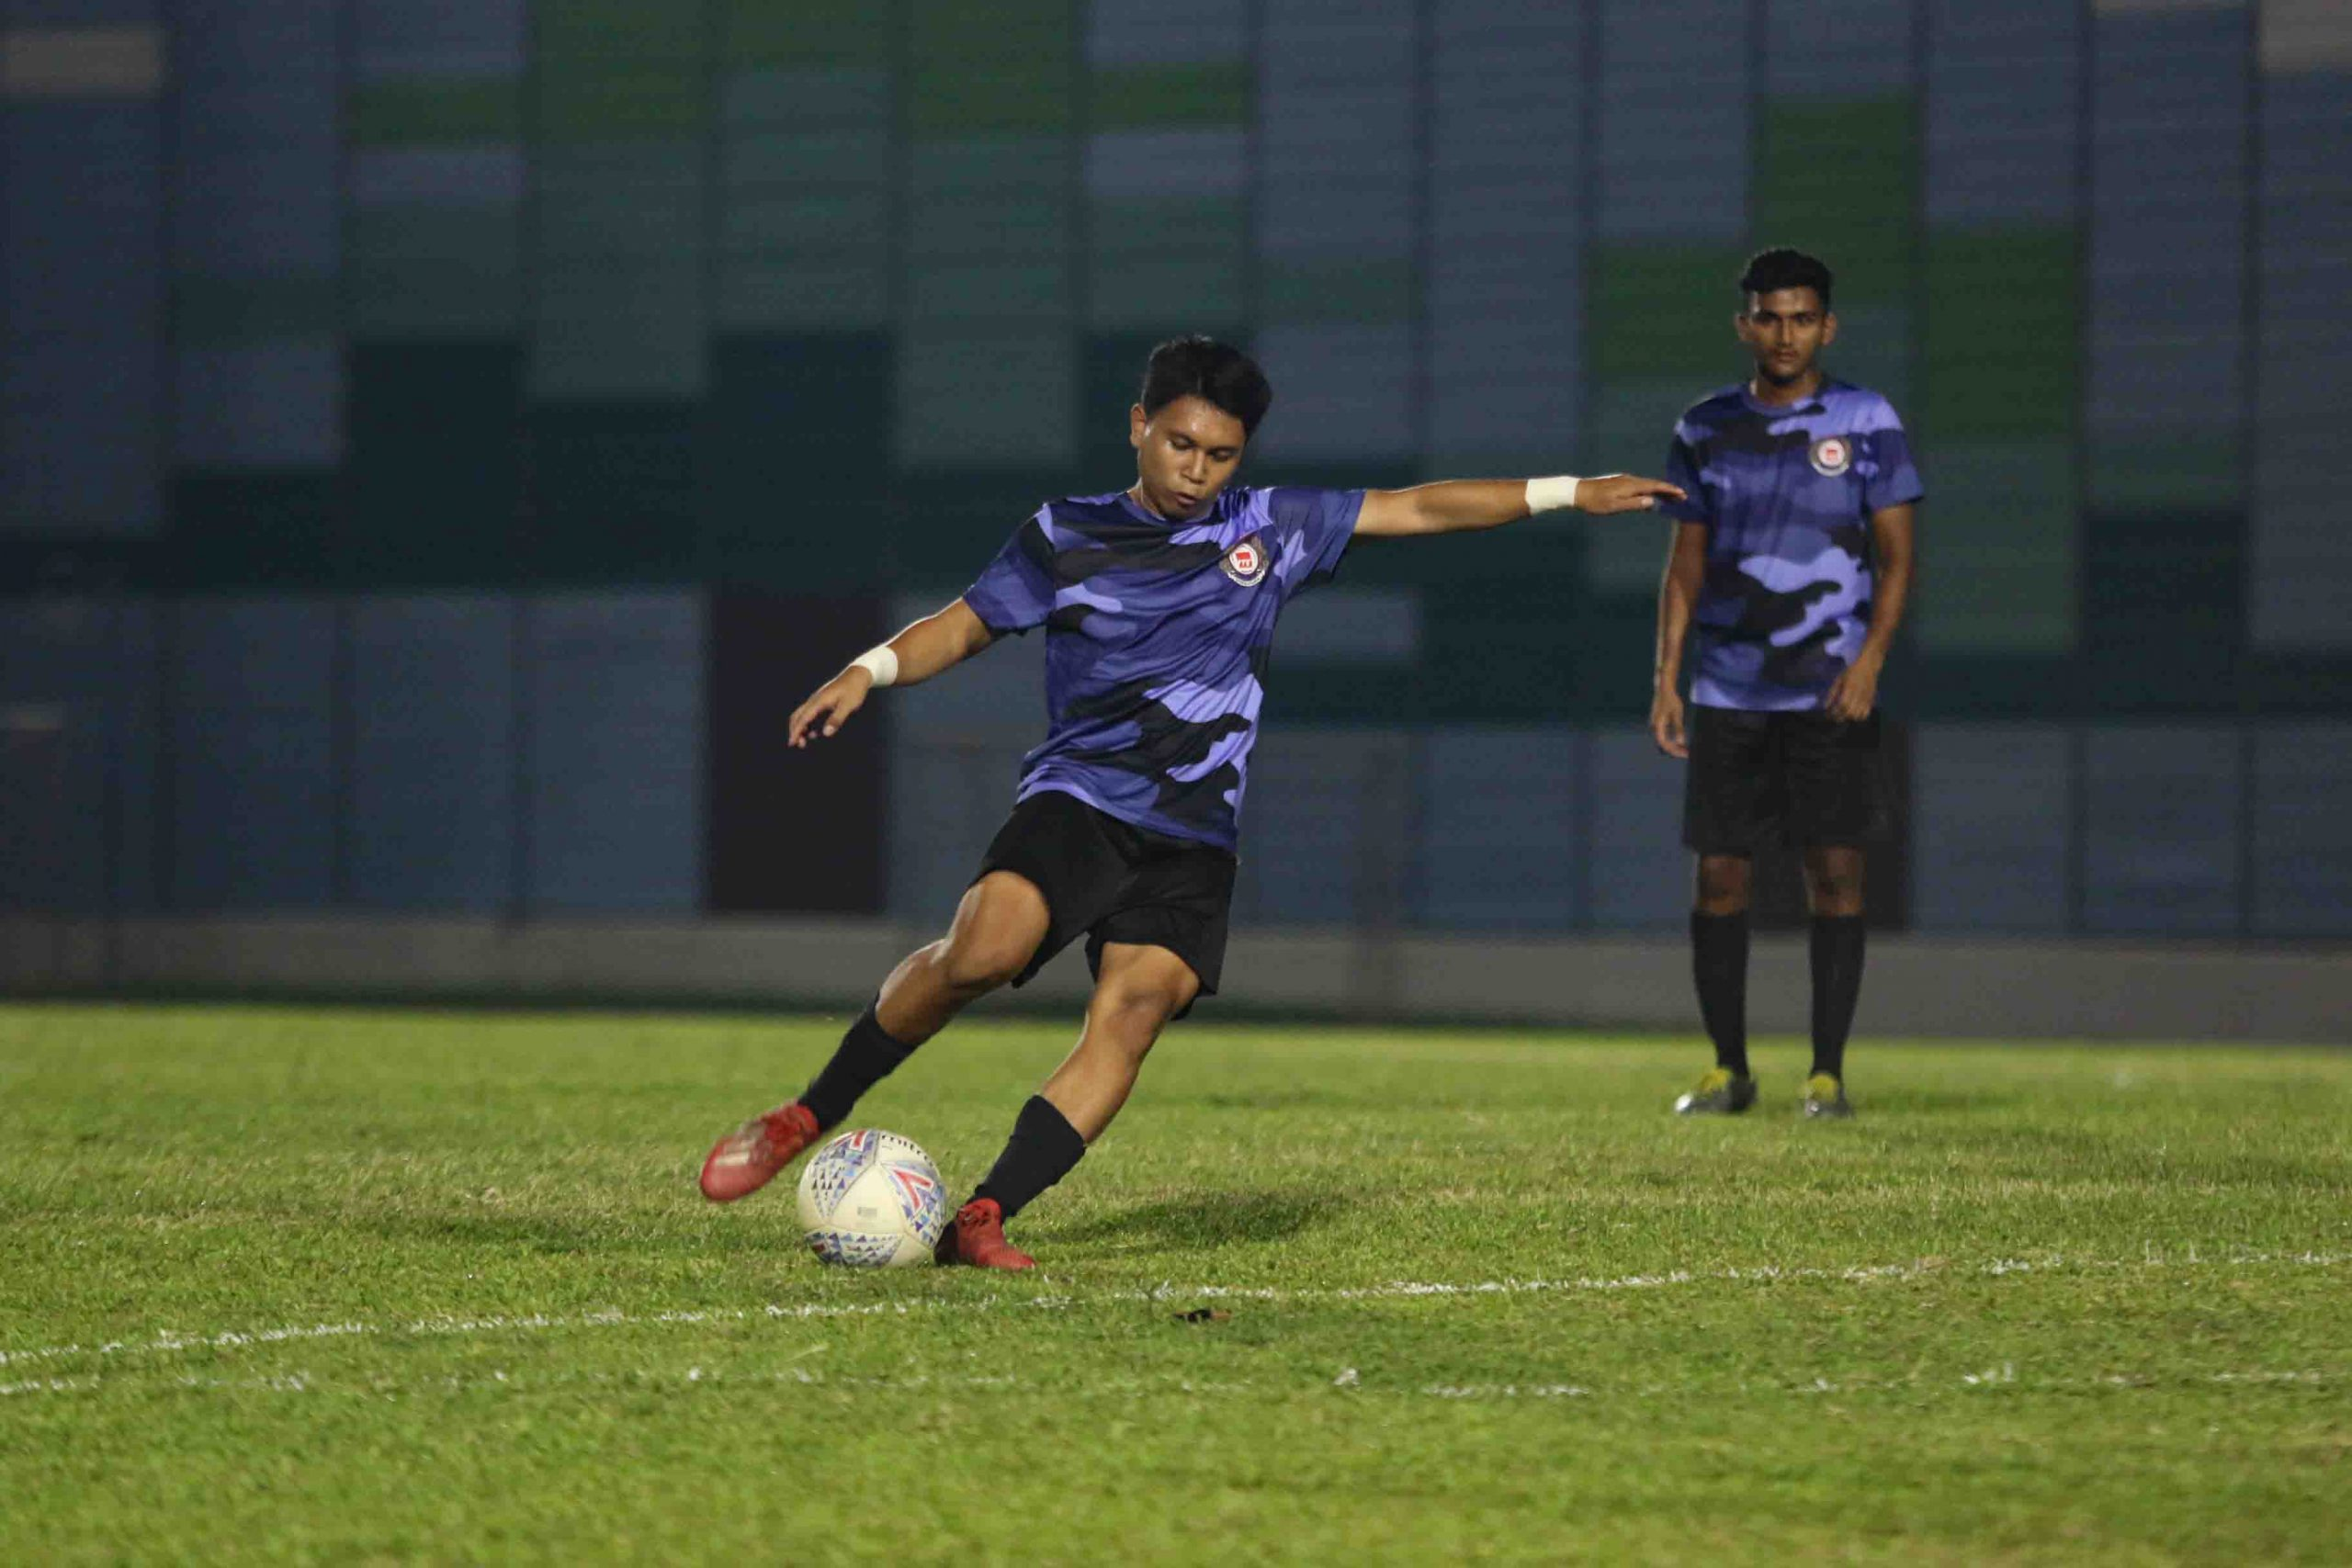 ITE earns hard fought 2-0 win over RP in POL-ITE fixture. (Photo 10 © Clara Lau/Red Sports)